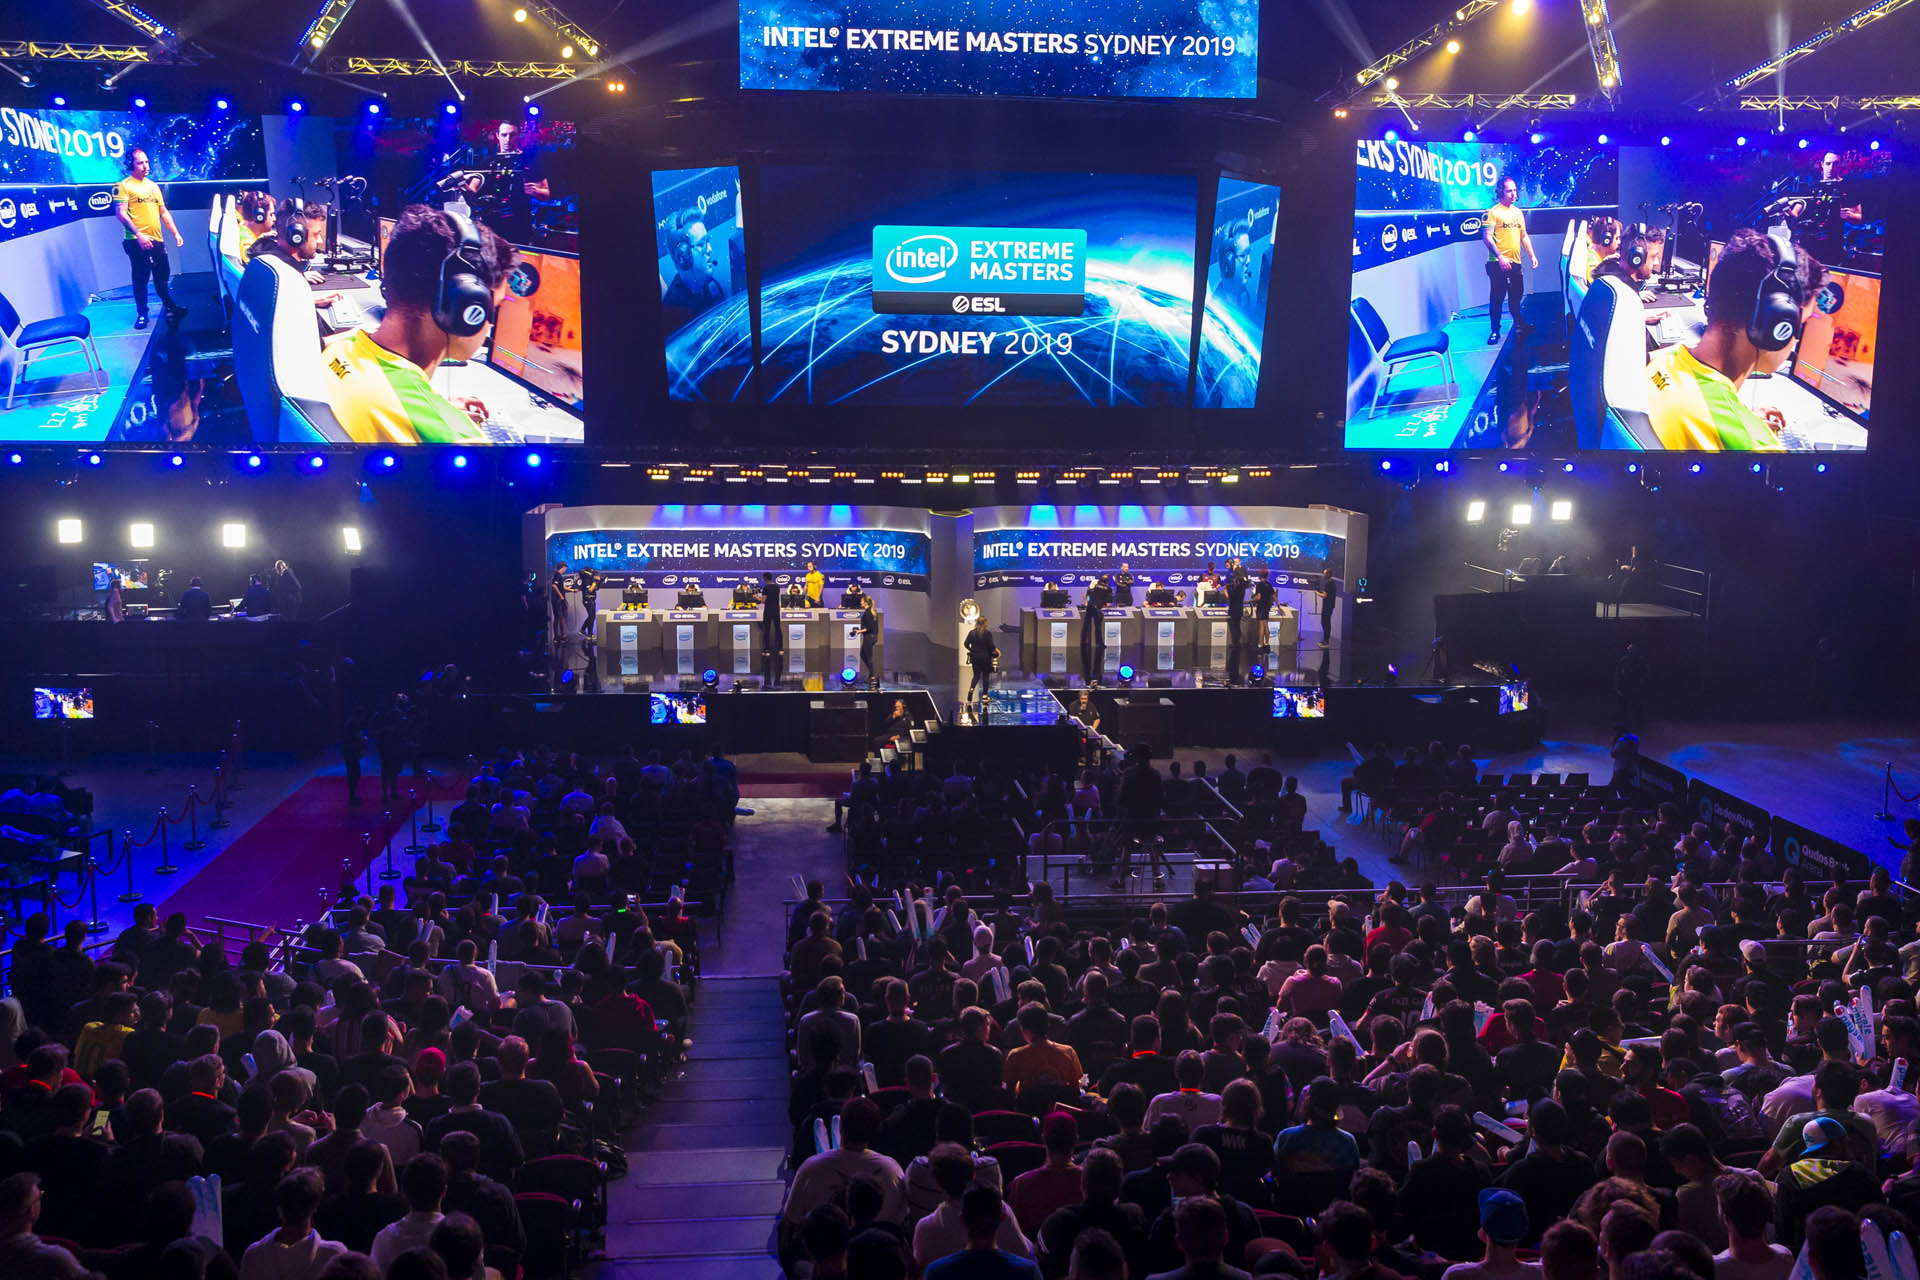 Intel Extreme Masters 2019